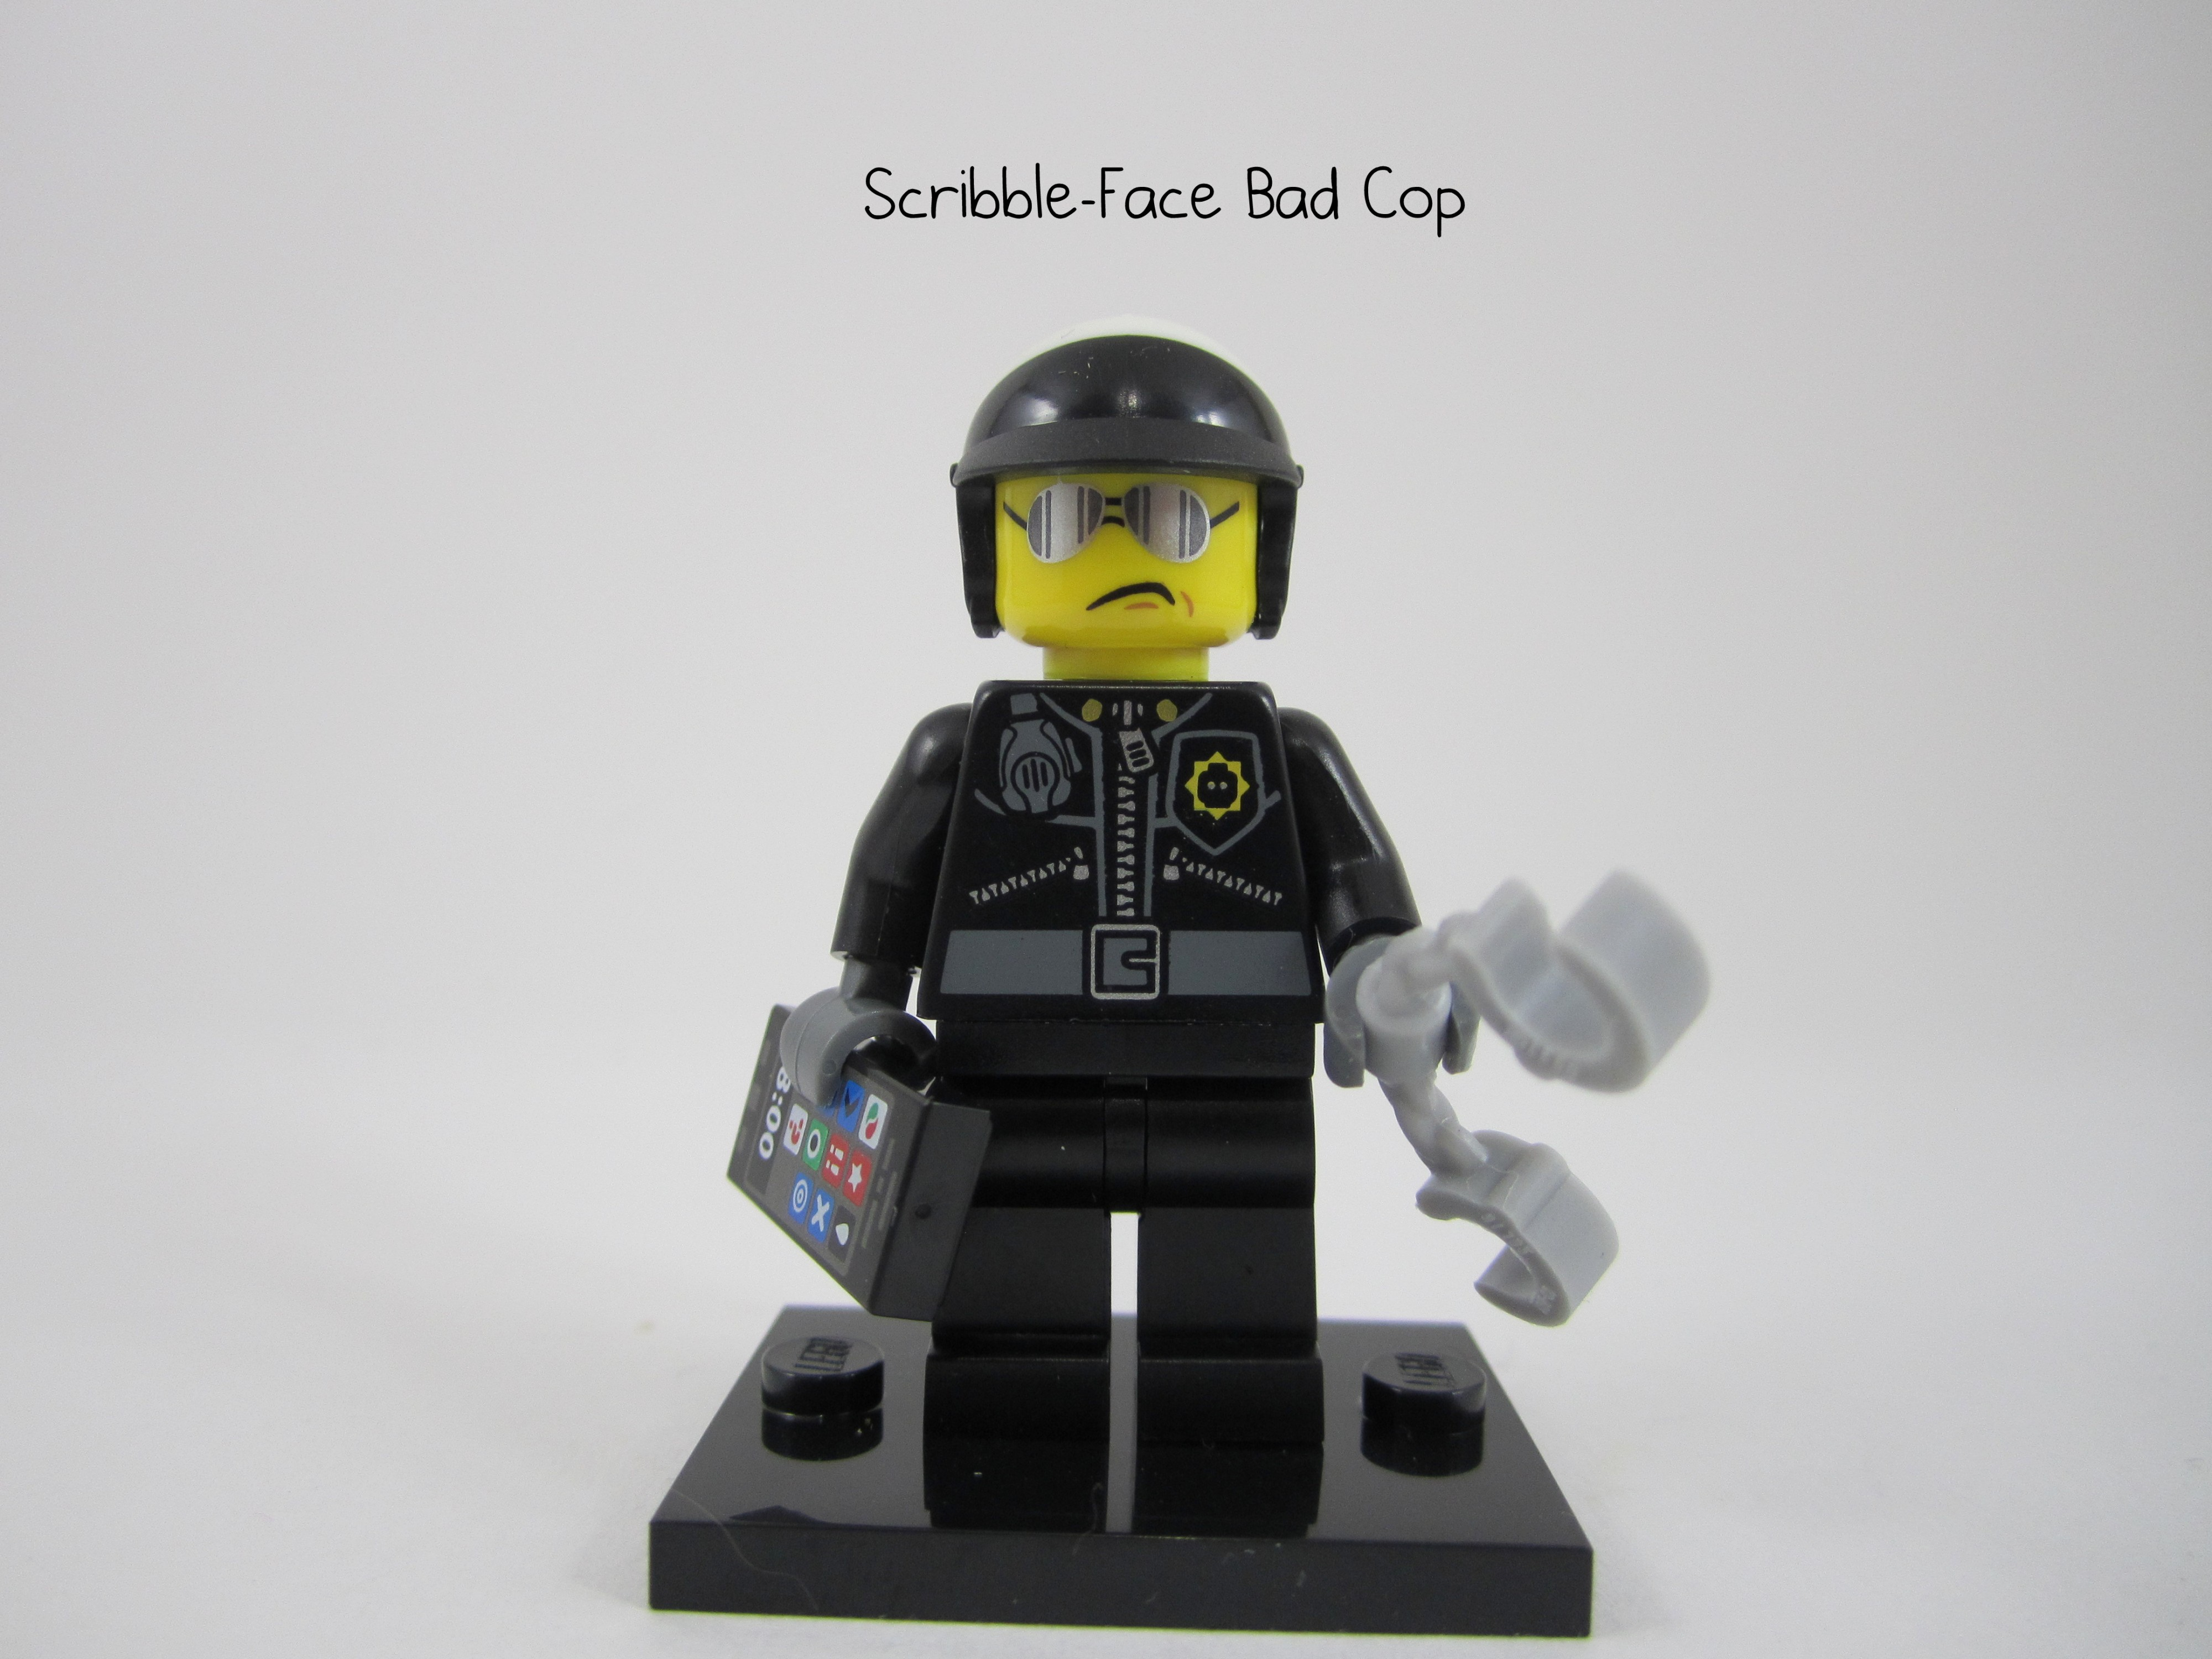 Lego Scribble Face Bad Cop